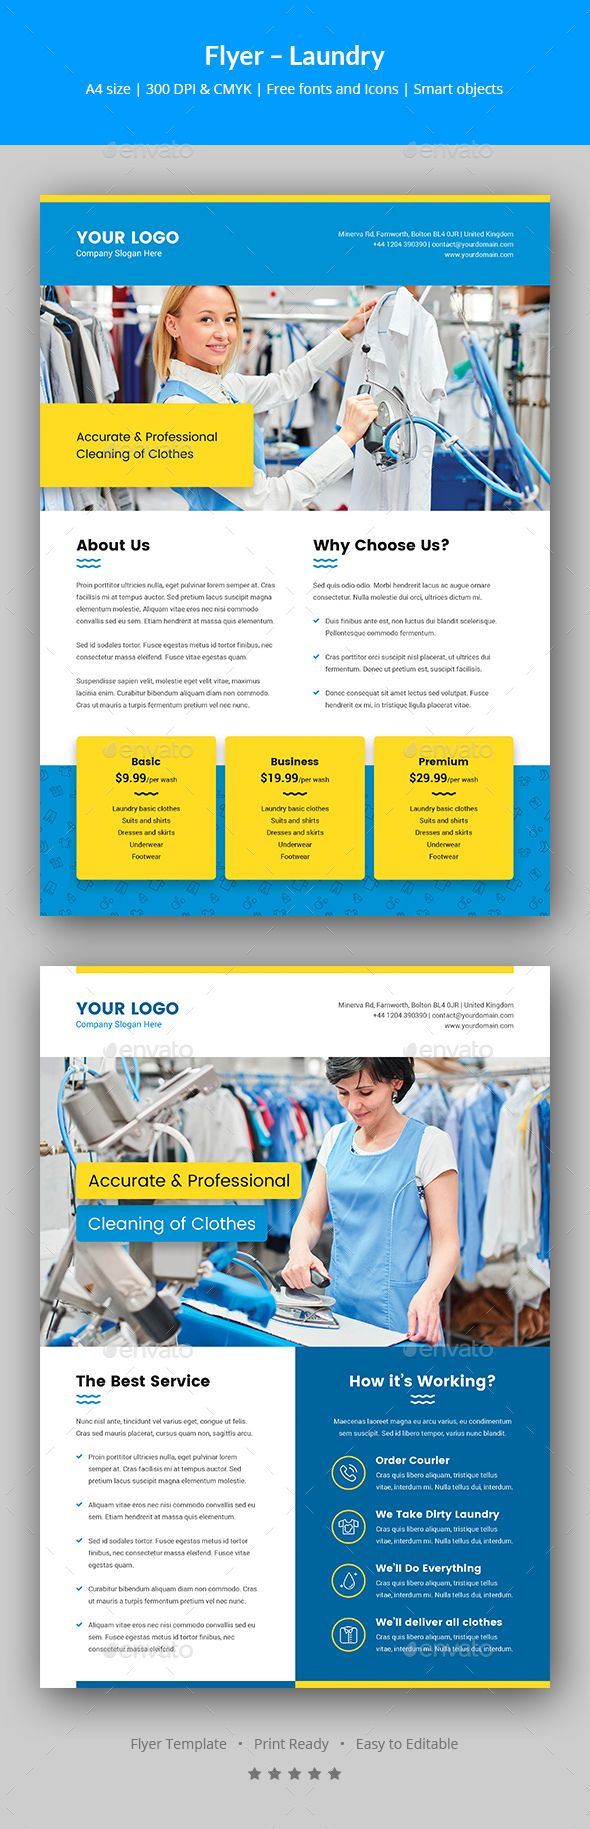 25 best laundry flyer images on pinterest laundry service font flyer laundry service pronofoot35fo Image collections